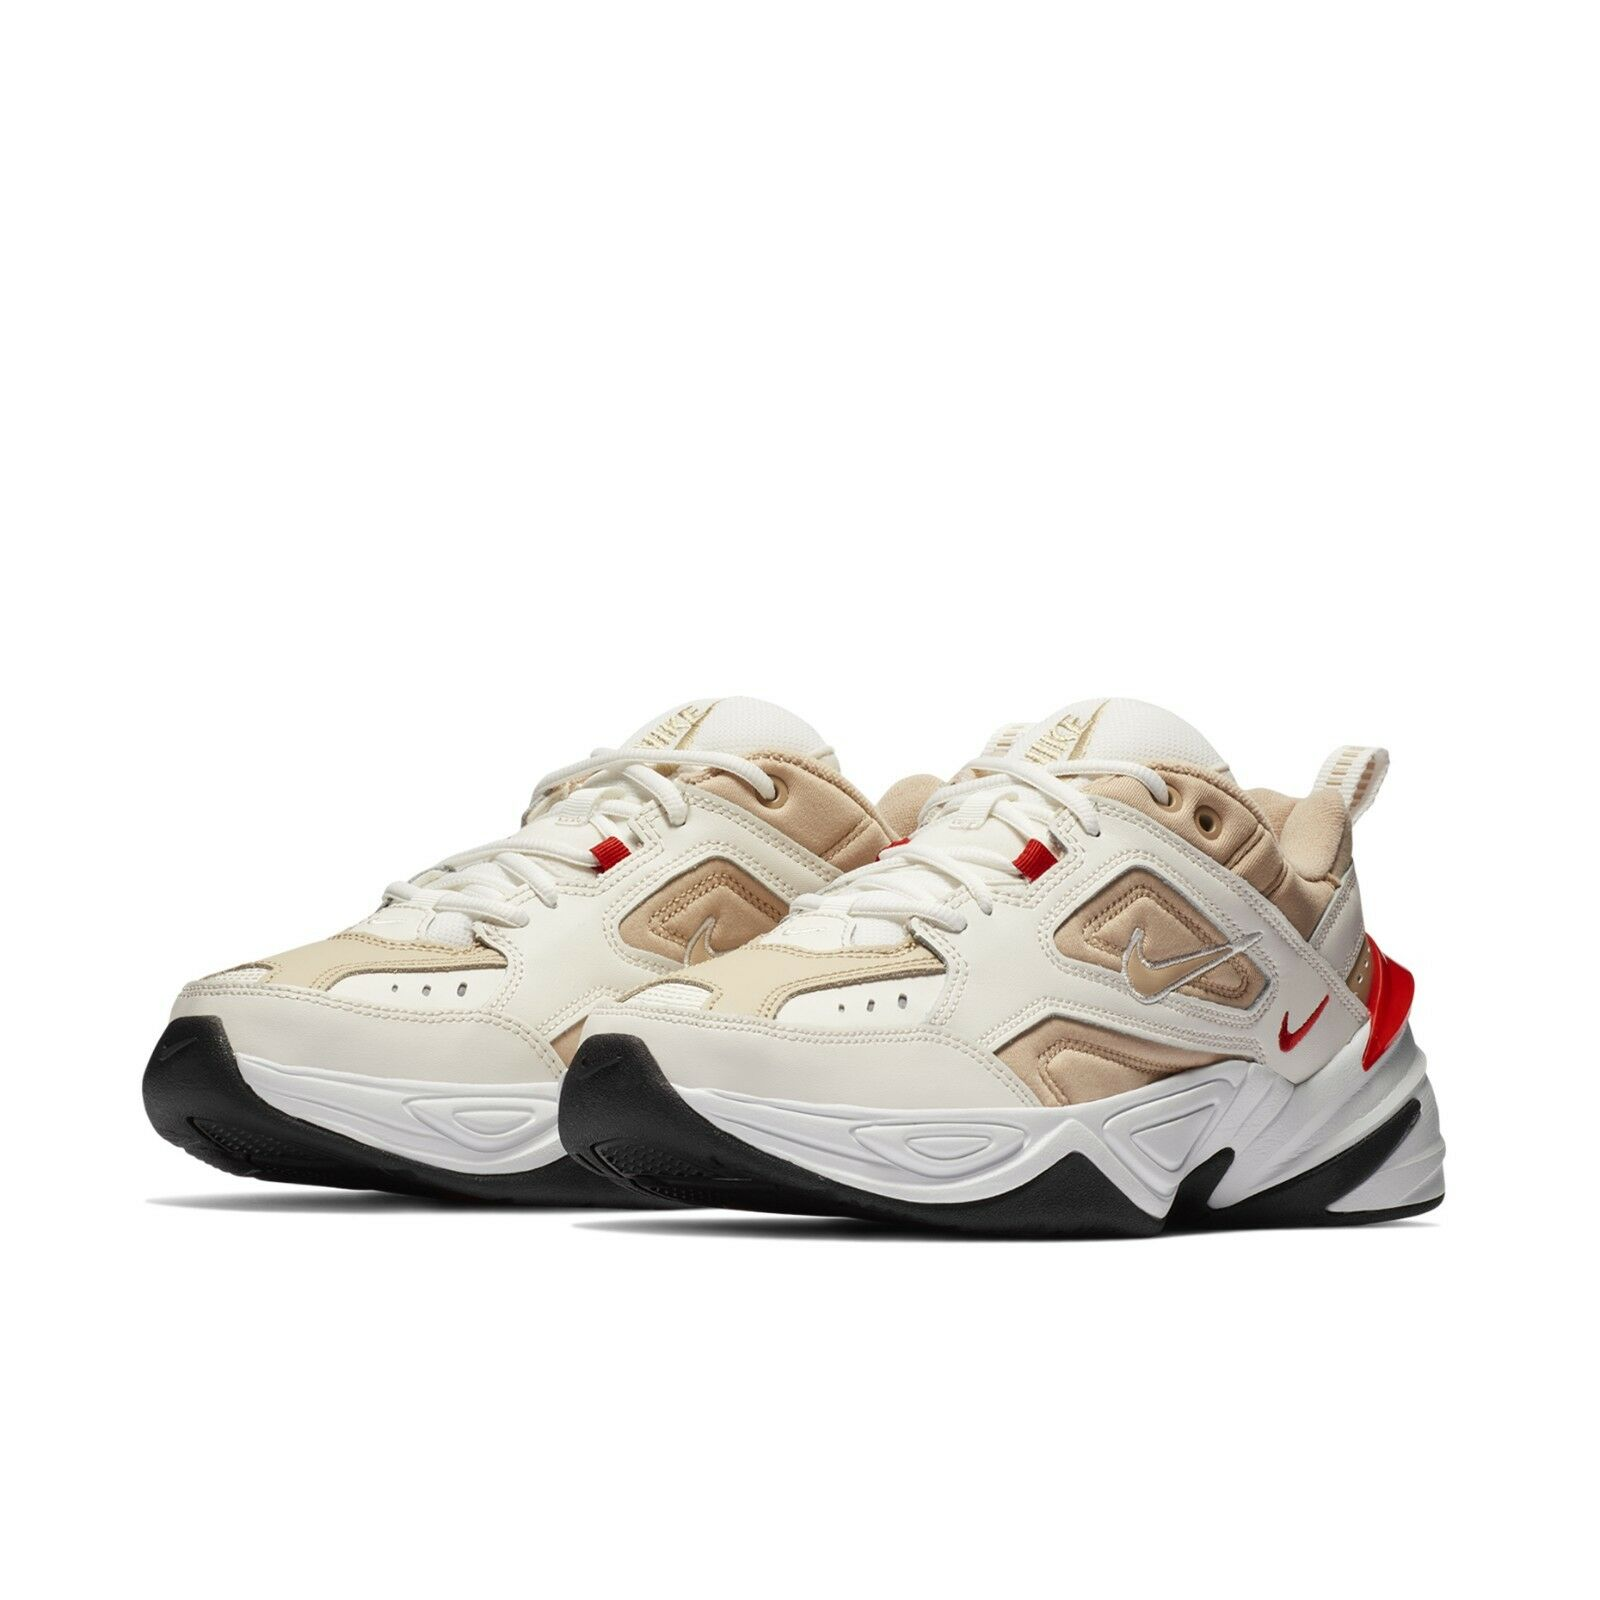 Nike Mens M2K Tekno Sail Habablack Red Daddy shoes Chunky Sneakers AV4789-102